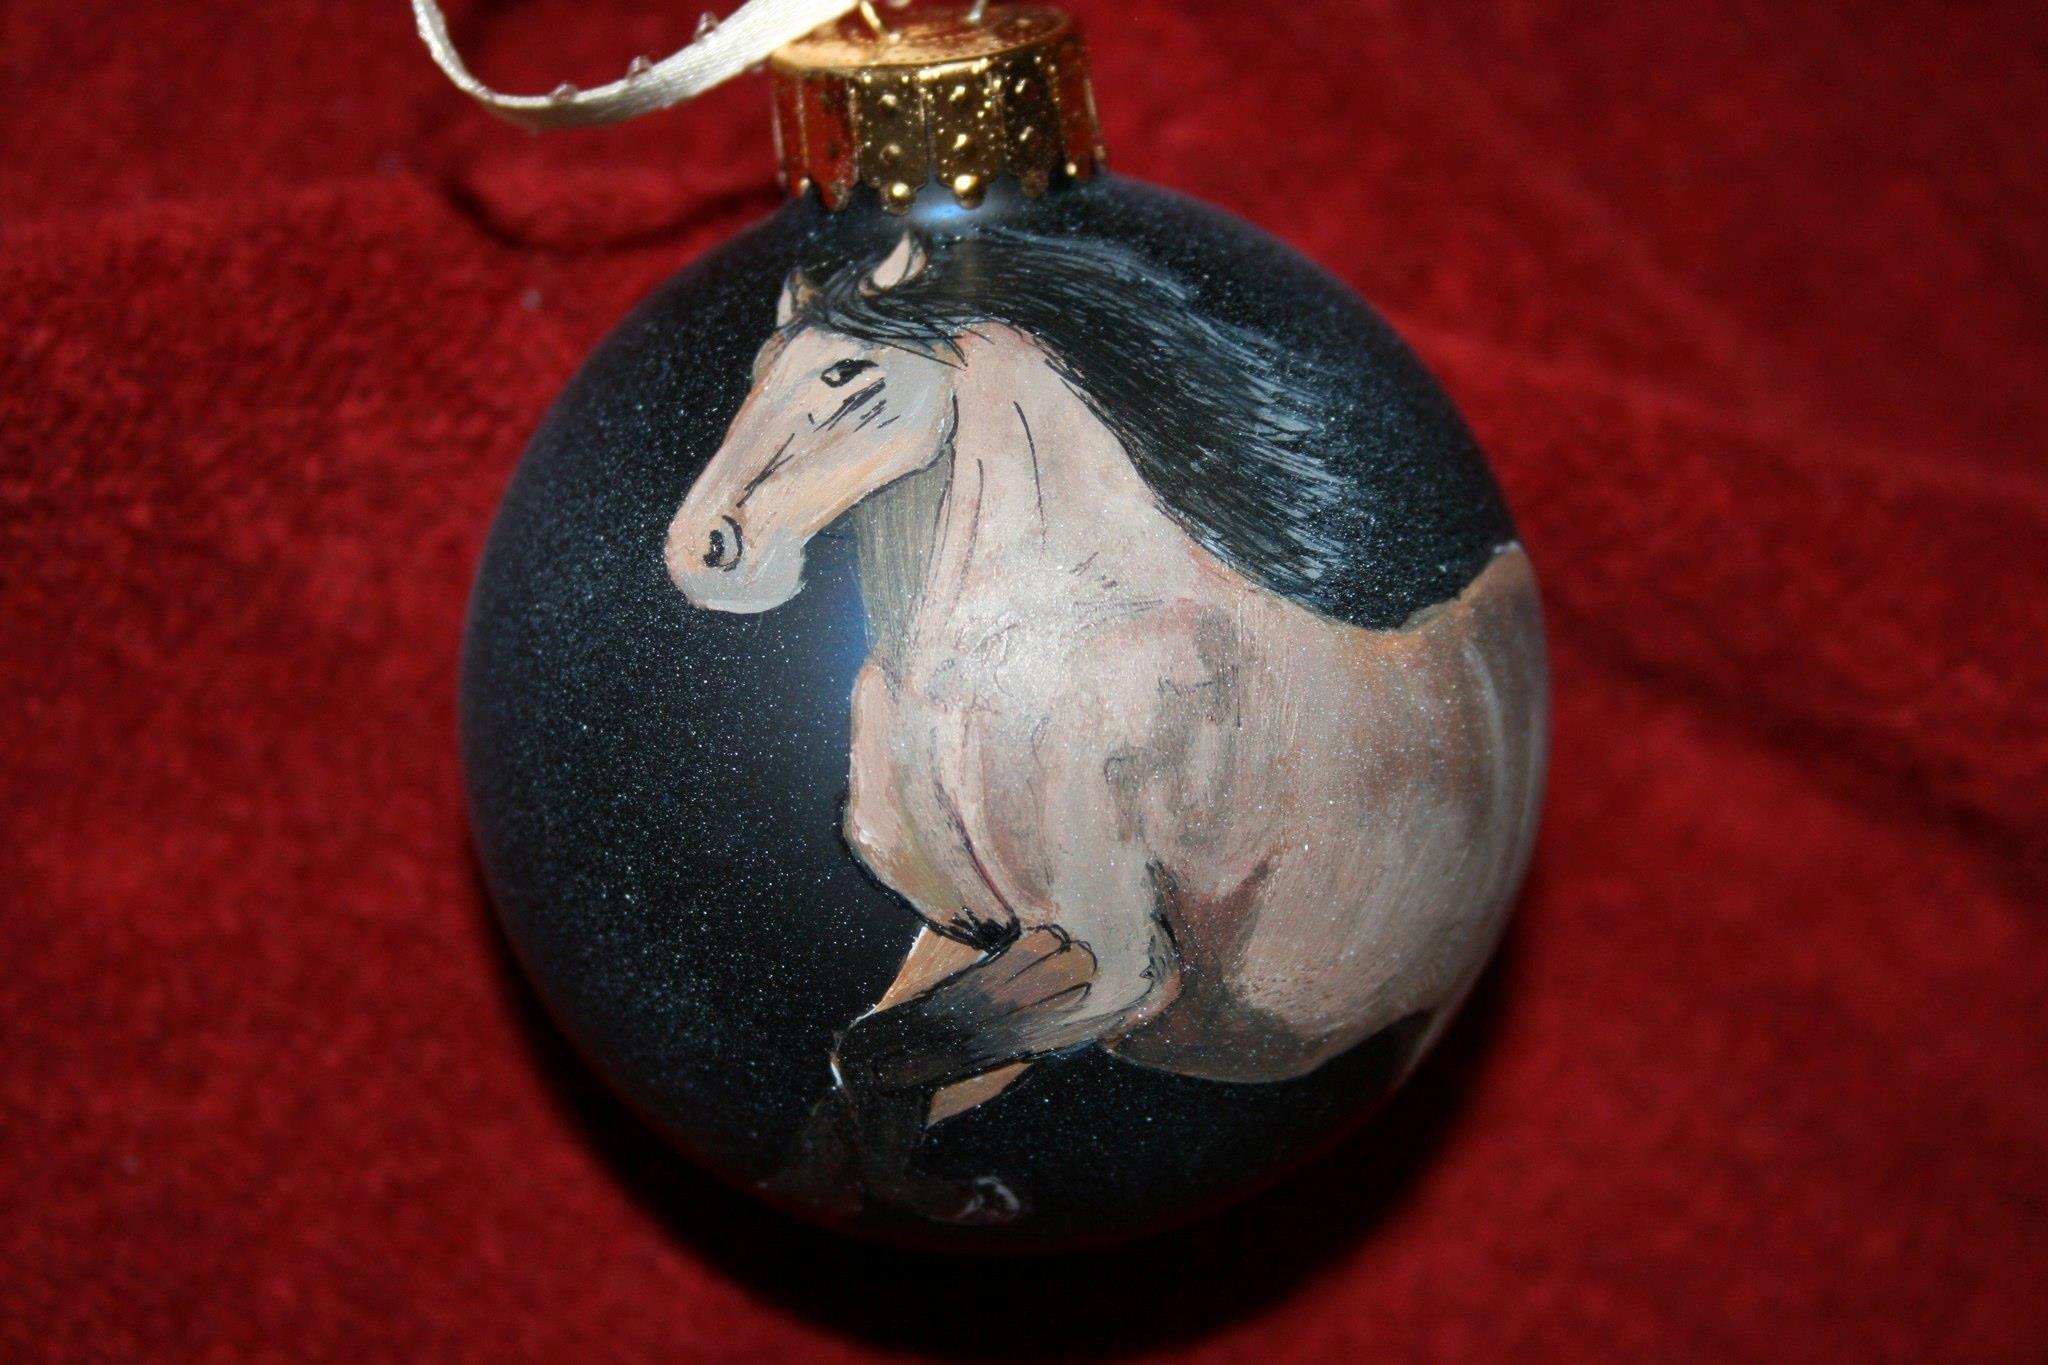 Hand Painted Horse Ornament Use Pencil Then Build Up Pain